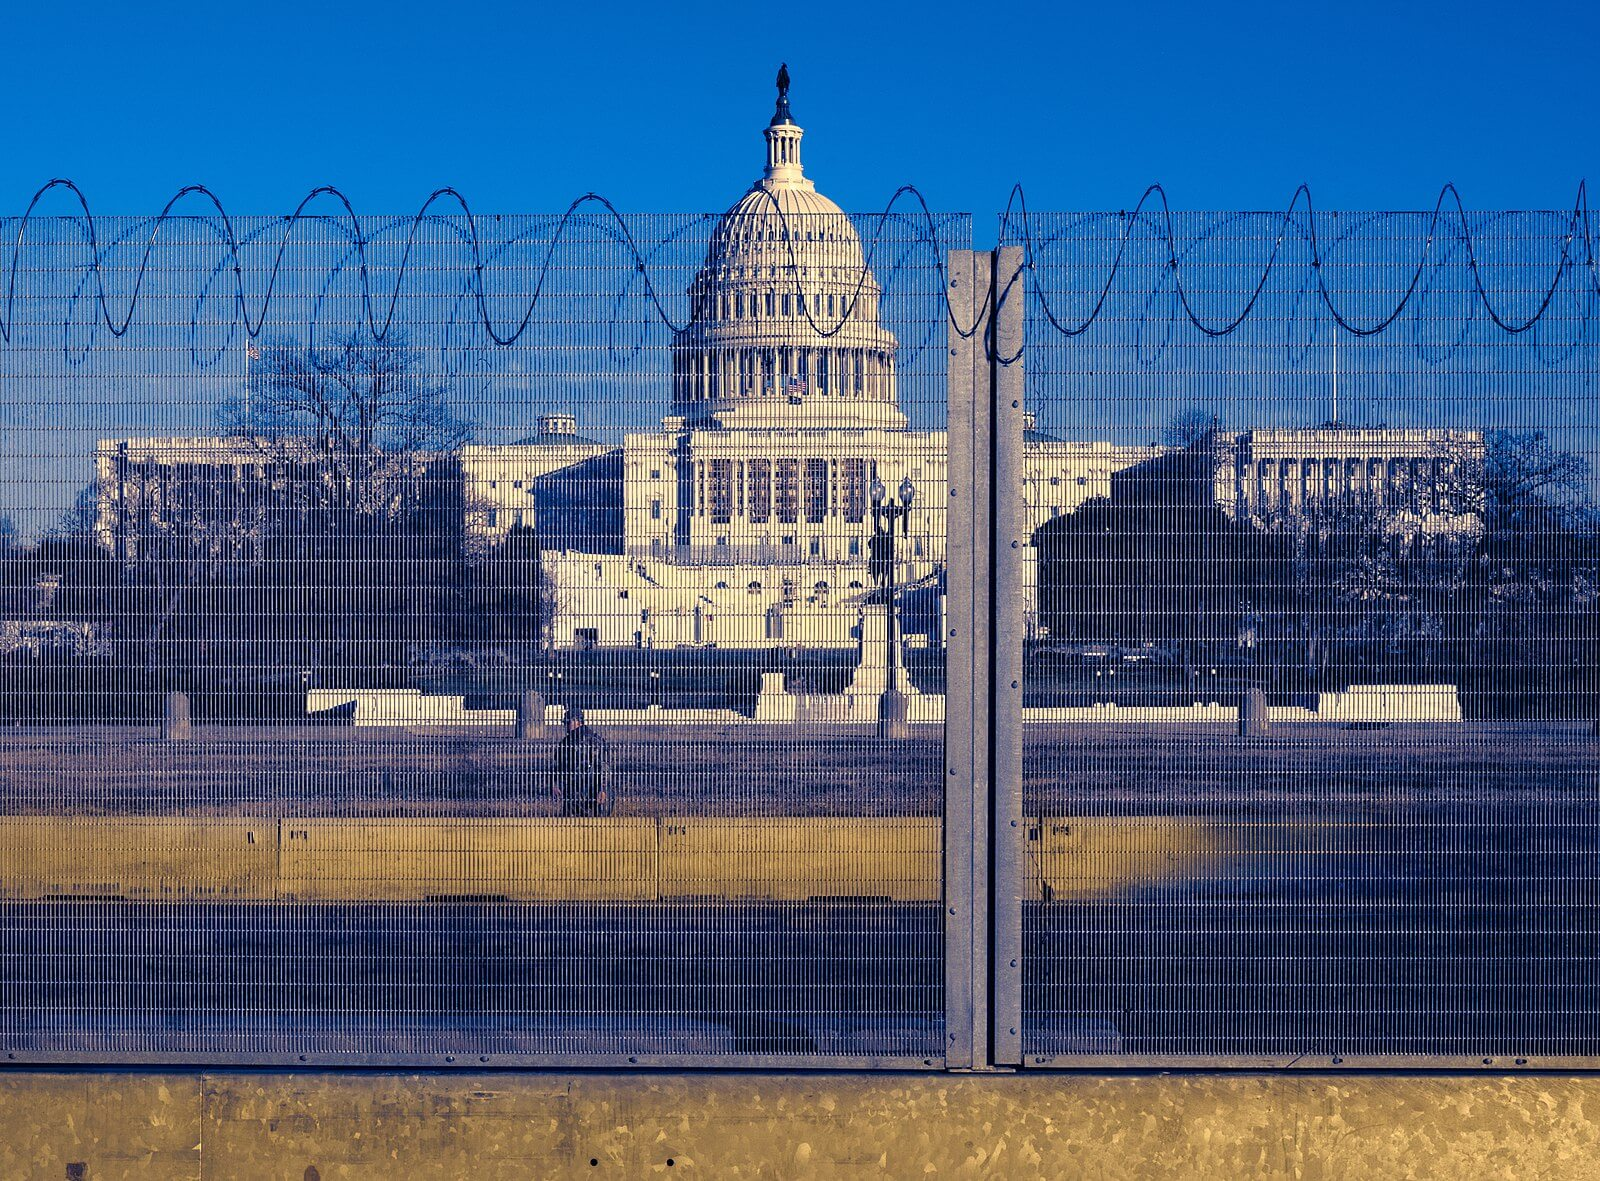 Can progressive politics save us? The capital through barbed wire